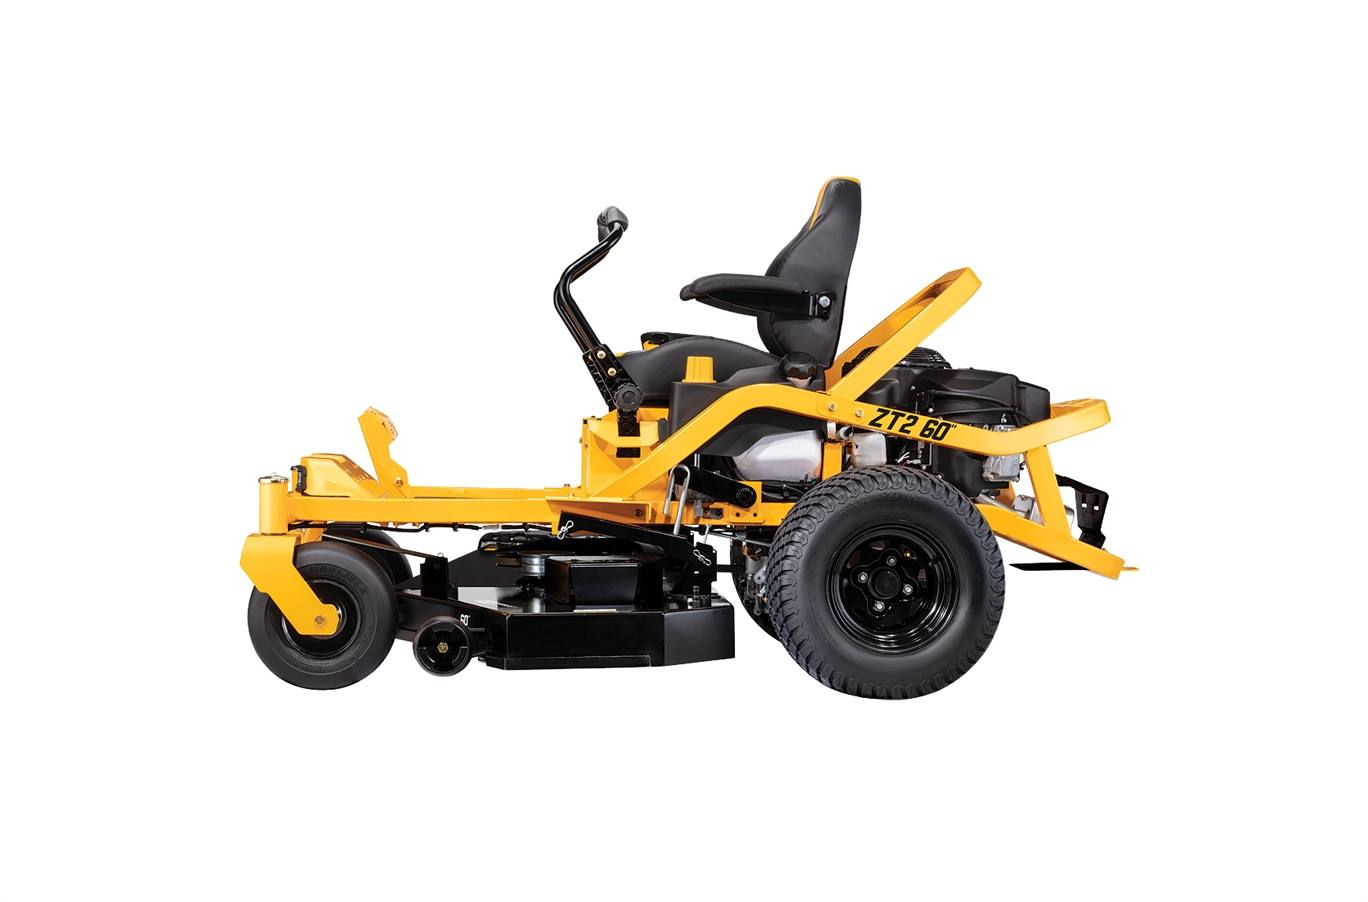 Inventory from Cub Cadet Garden Hut Grand Forks, ND (701) 775-3191